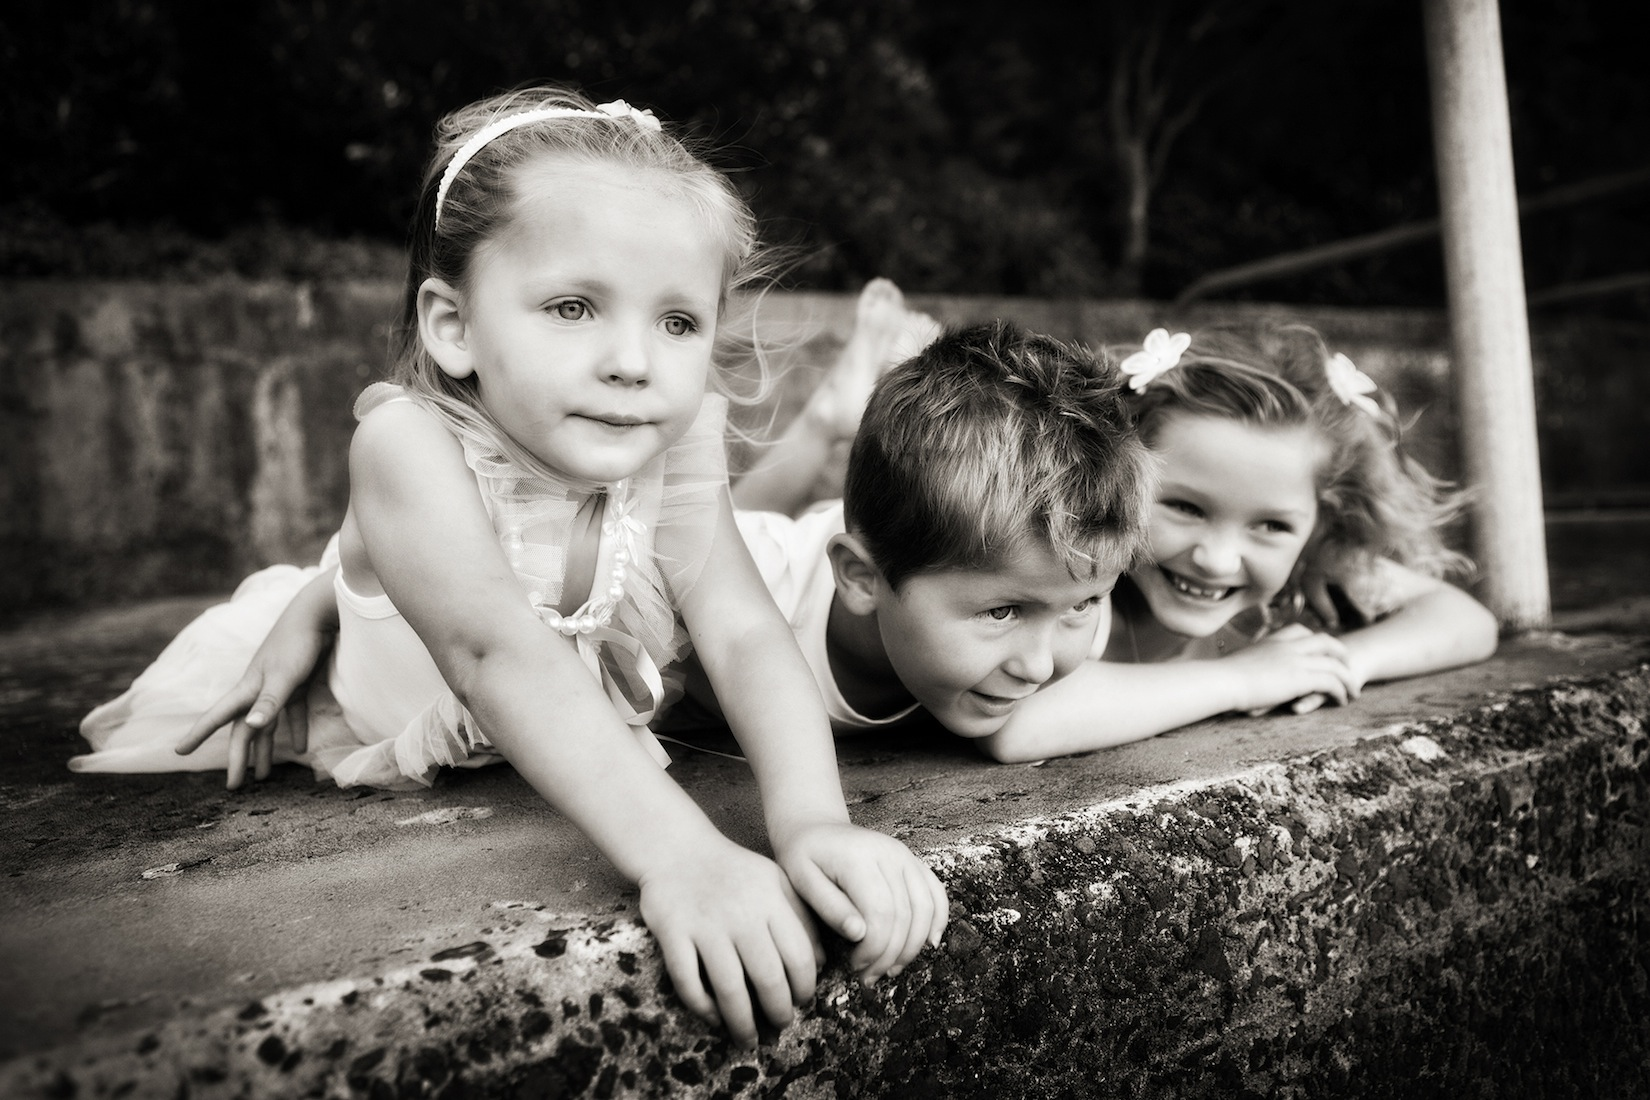 Family photographer south coast NSW